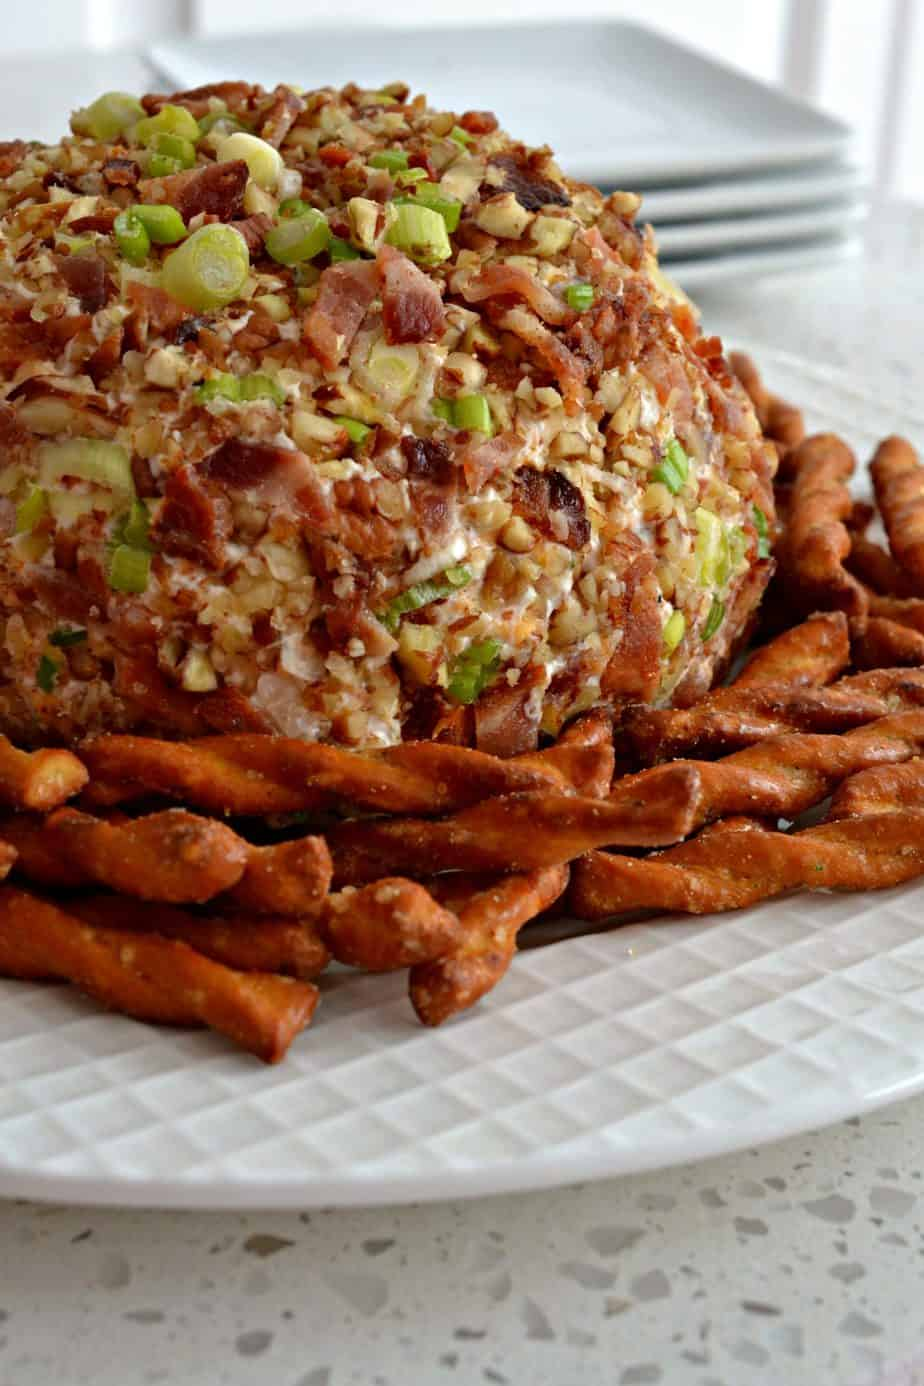 This Bacon Ranch Cheese Ball will be the highlight of your next party